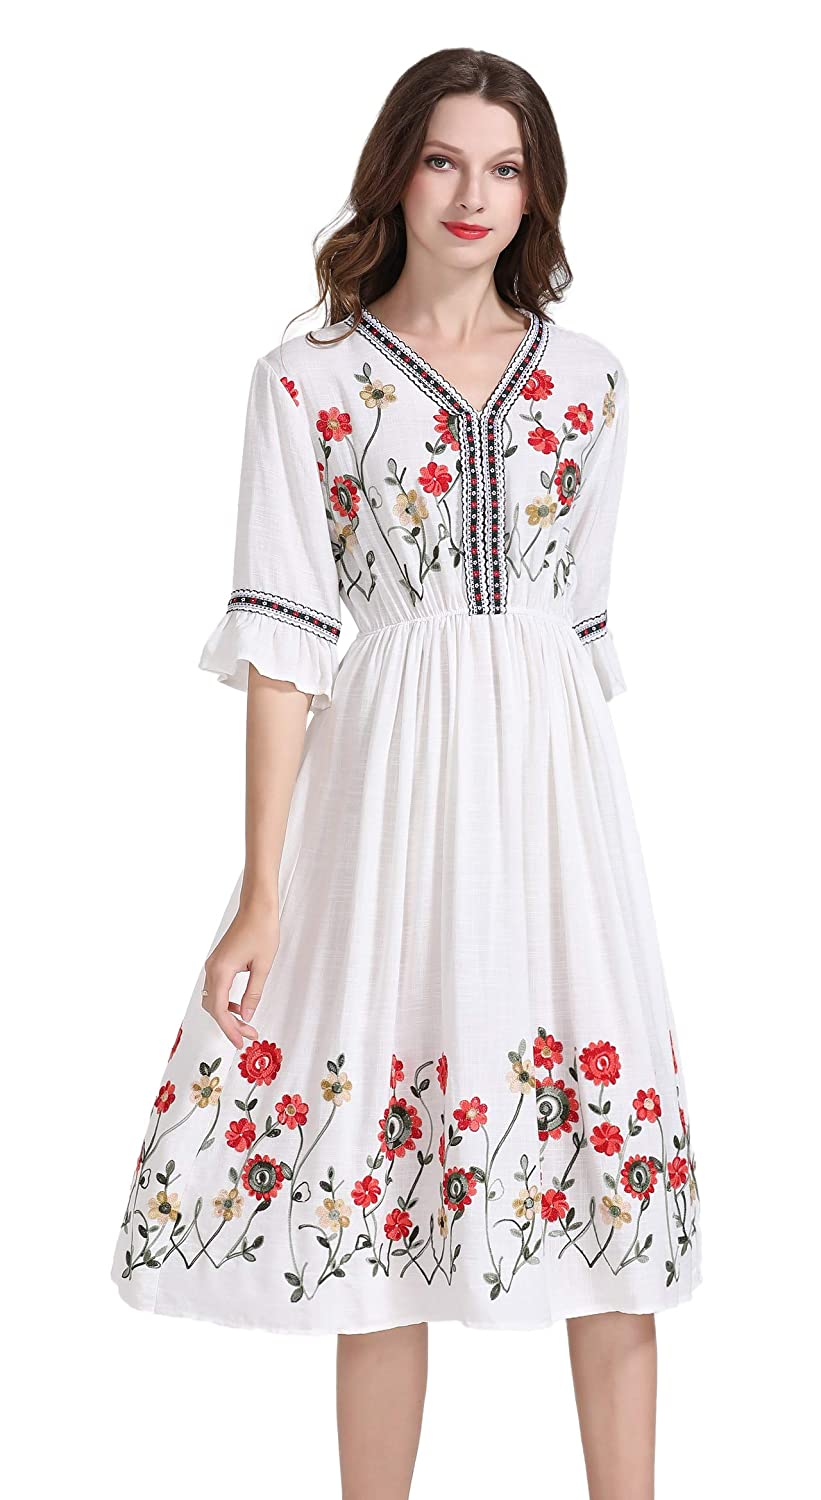 60s Wedding Dresses | 70s Wedding Dresses Womens Short Sleeve Mexican Embroidered Floral Pleated Midi A-line Cocktail Dress $26.99 AT vintagedancer.com